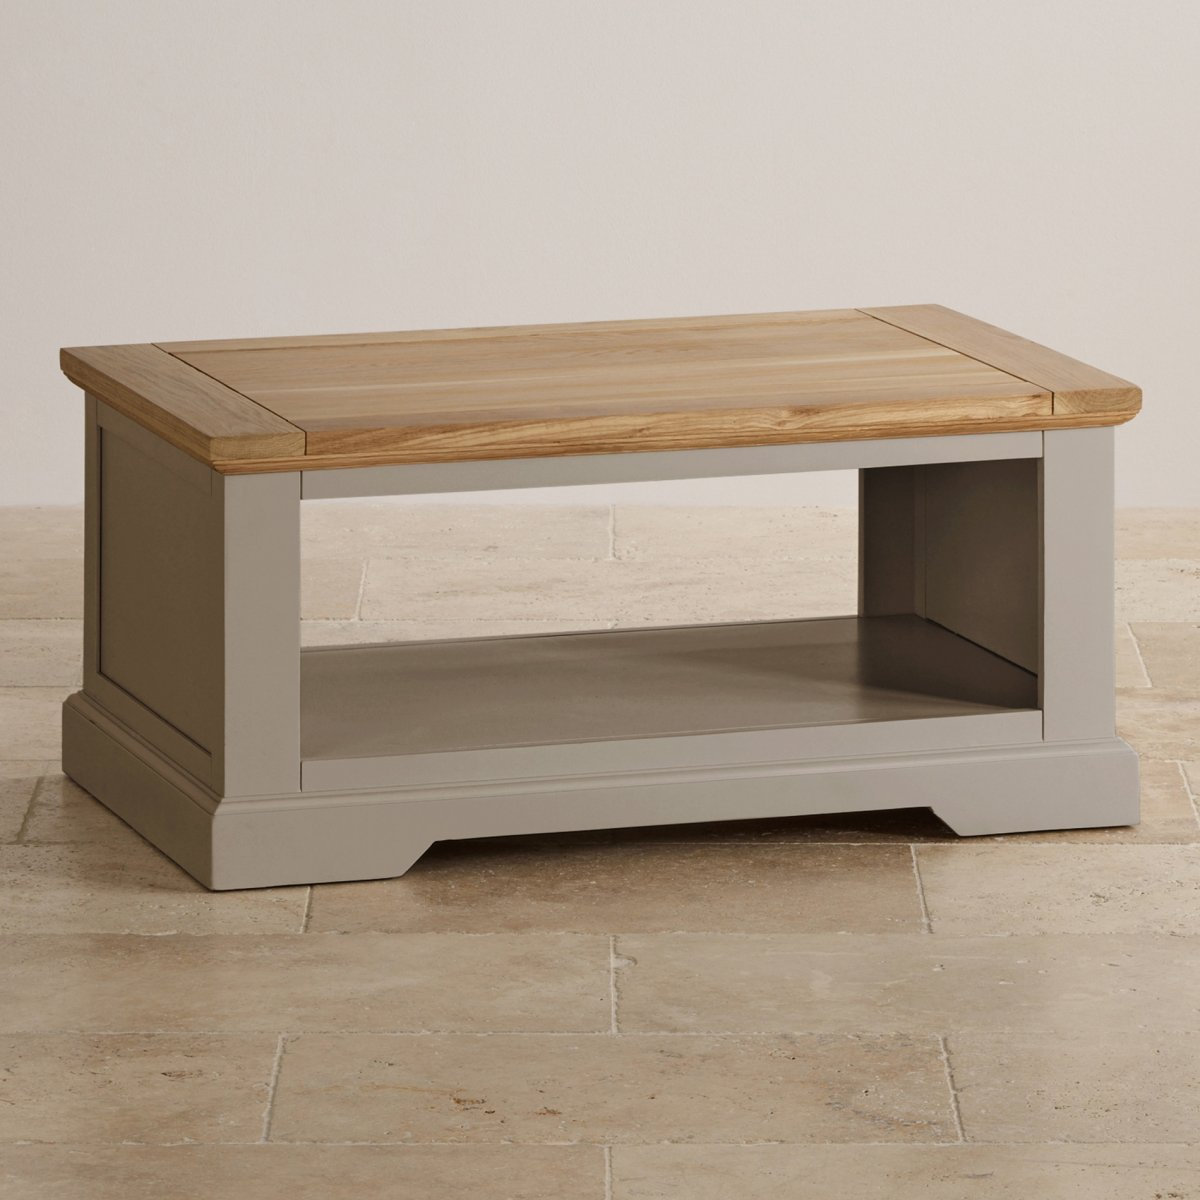 St ives grey coffee table with brushed oak top for Furniture uk